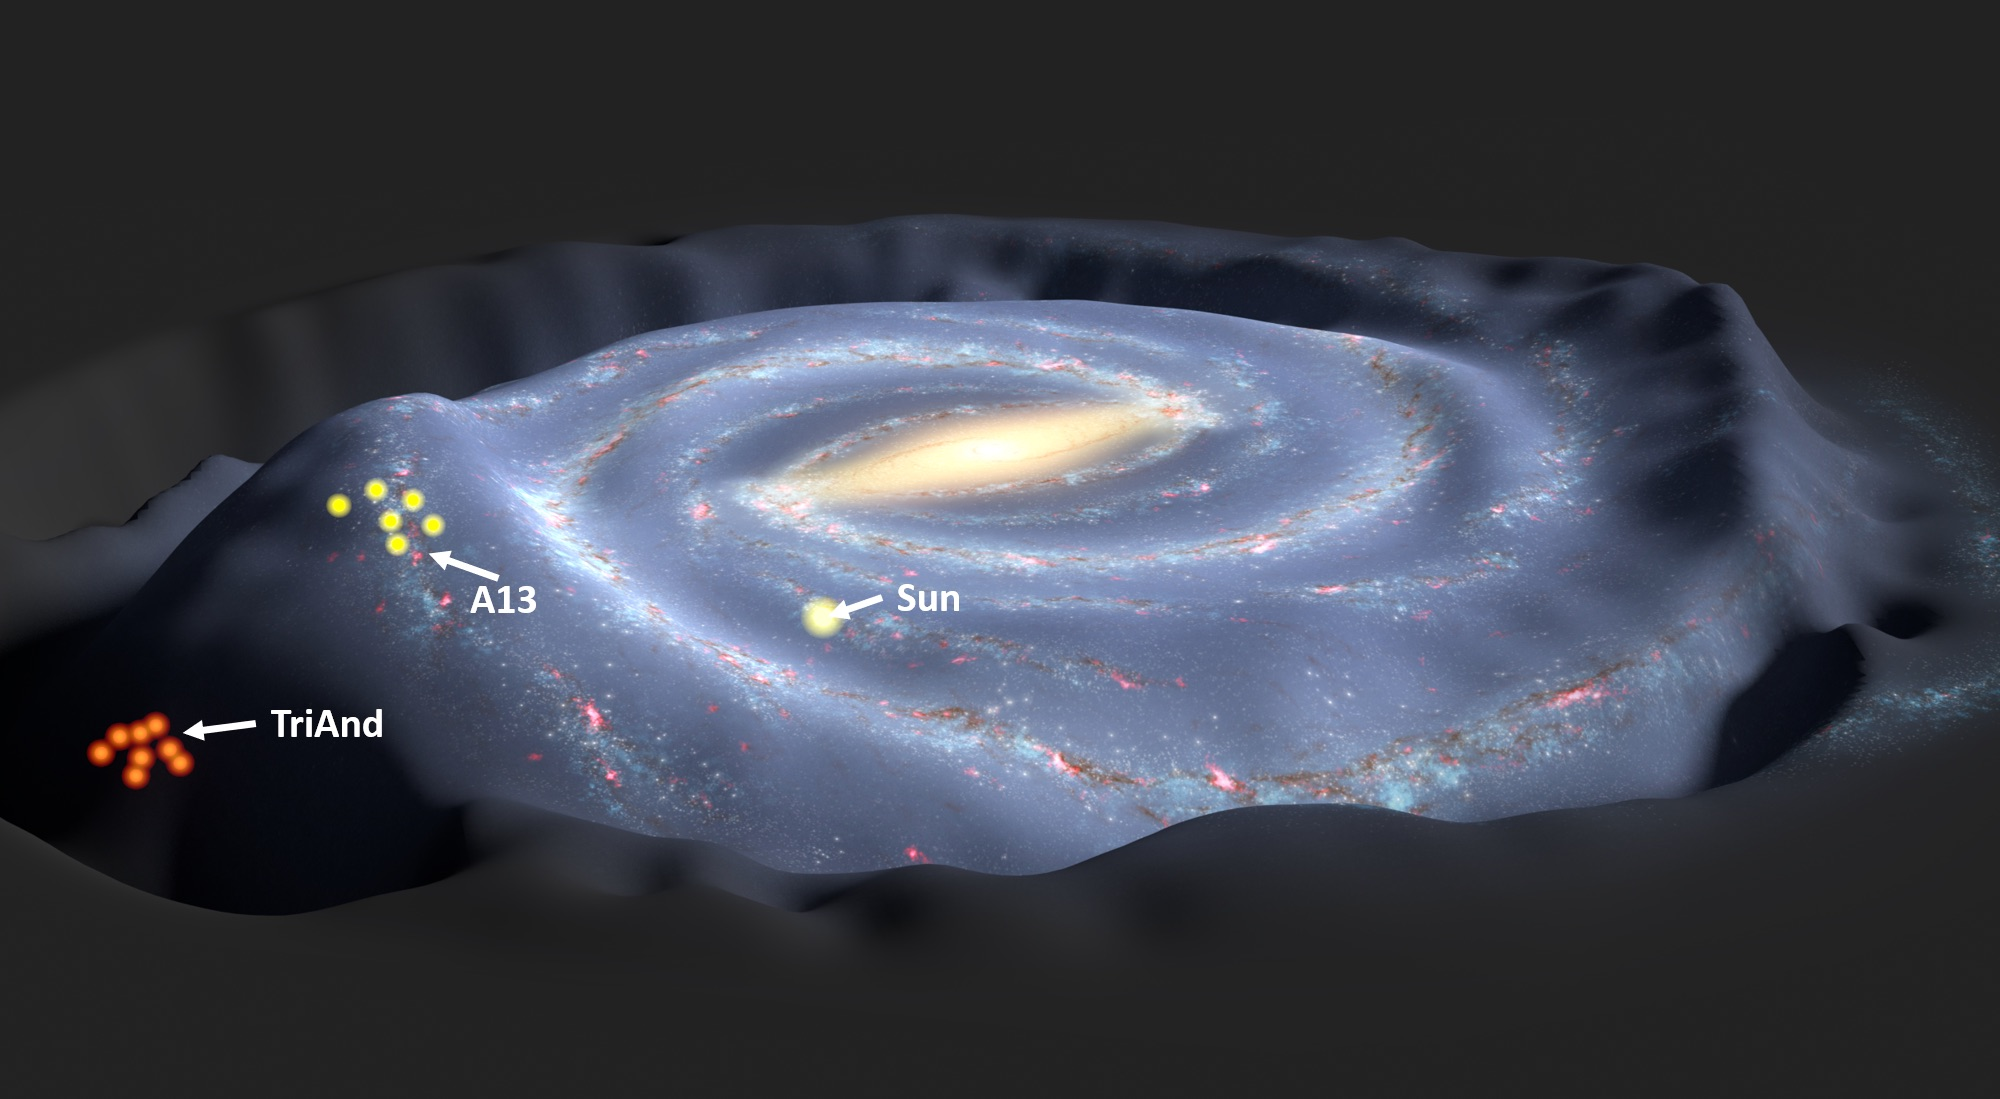 An ancient fly-by of our Milky Way by a neighbour may have warped our galaxy into a huge galactic wave, scattering stars 14,000 light years above and below ...